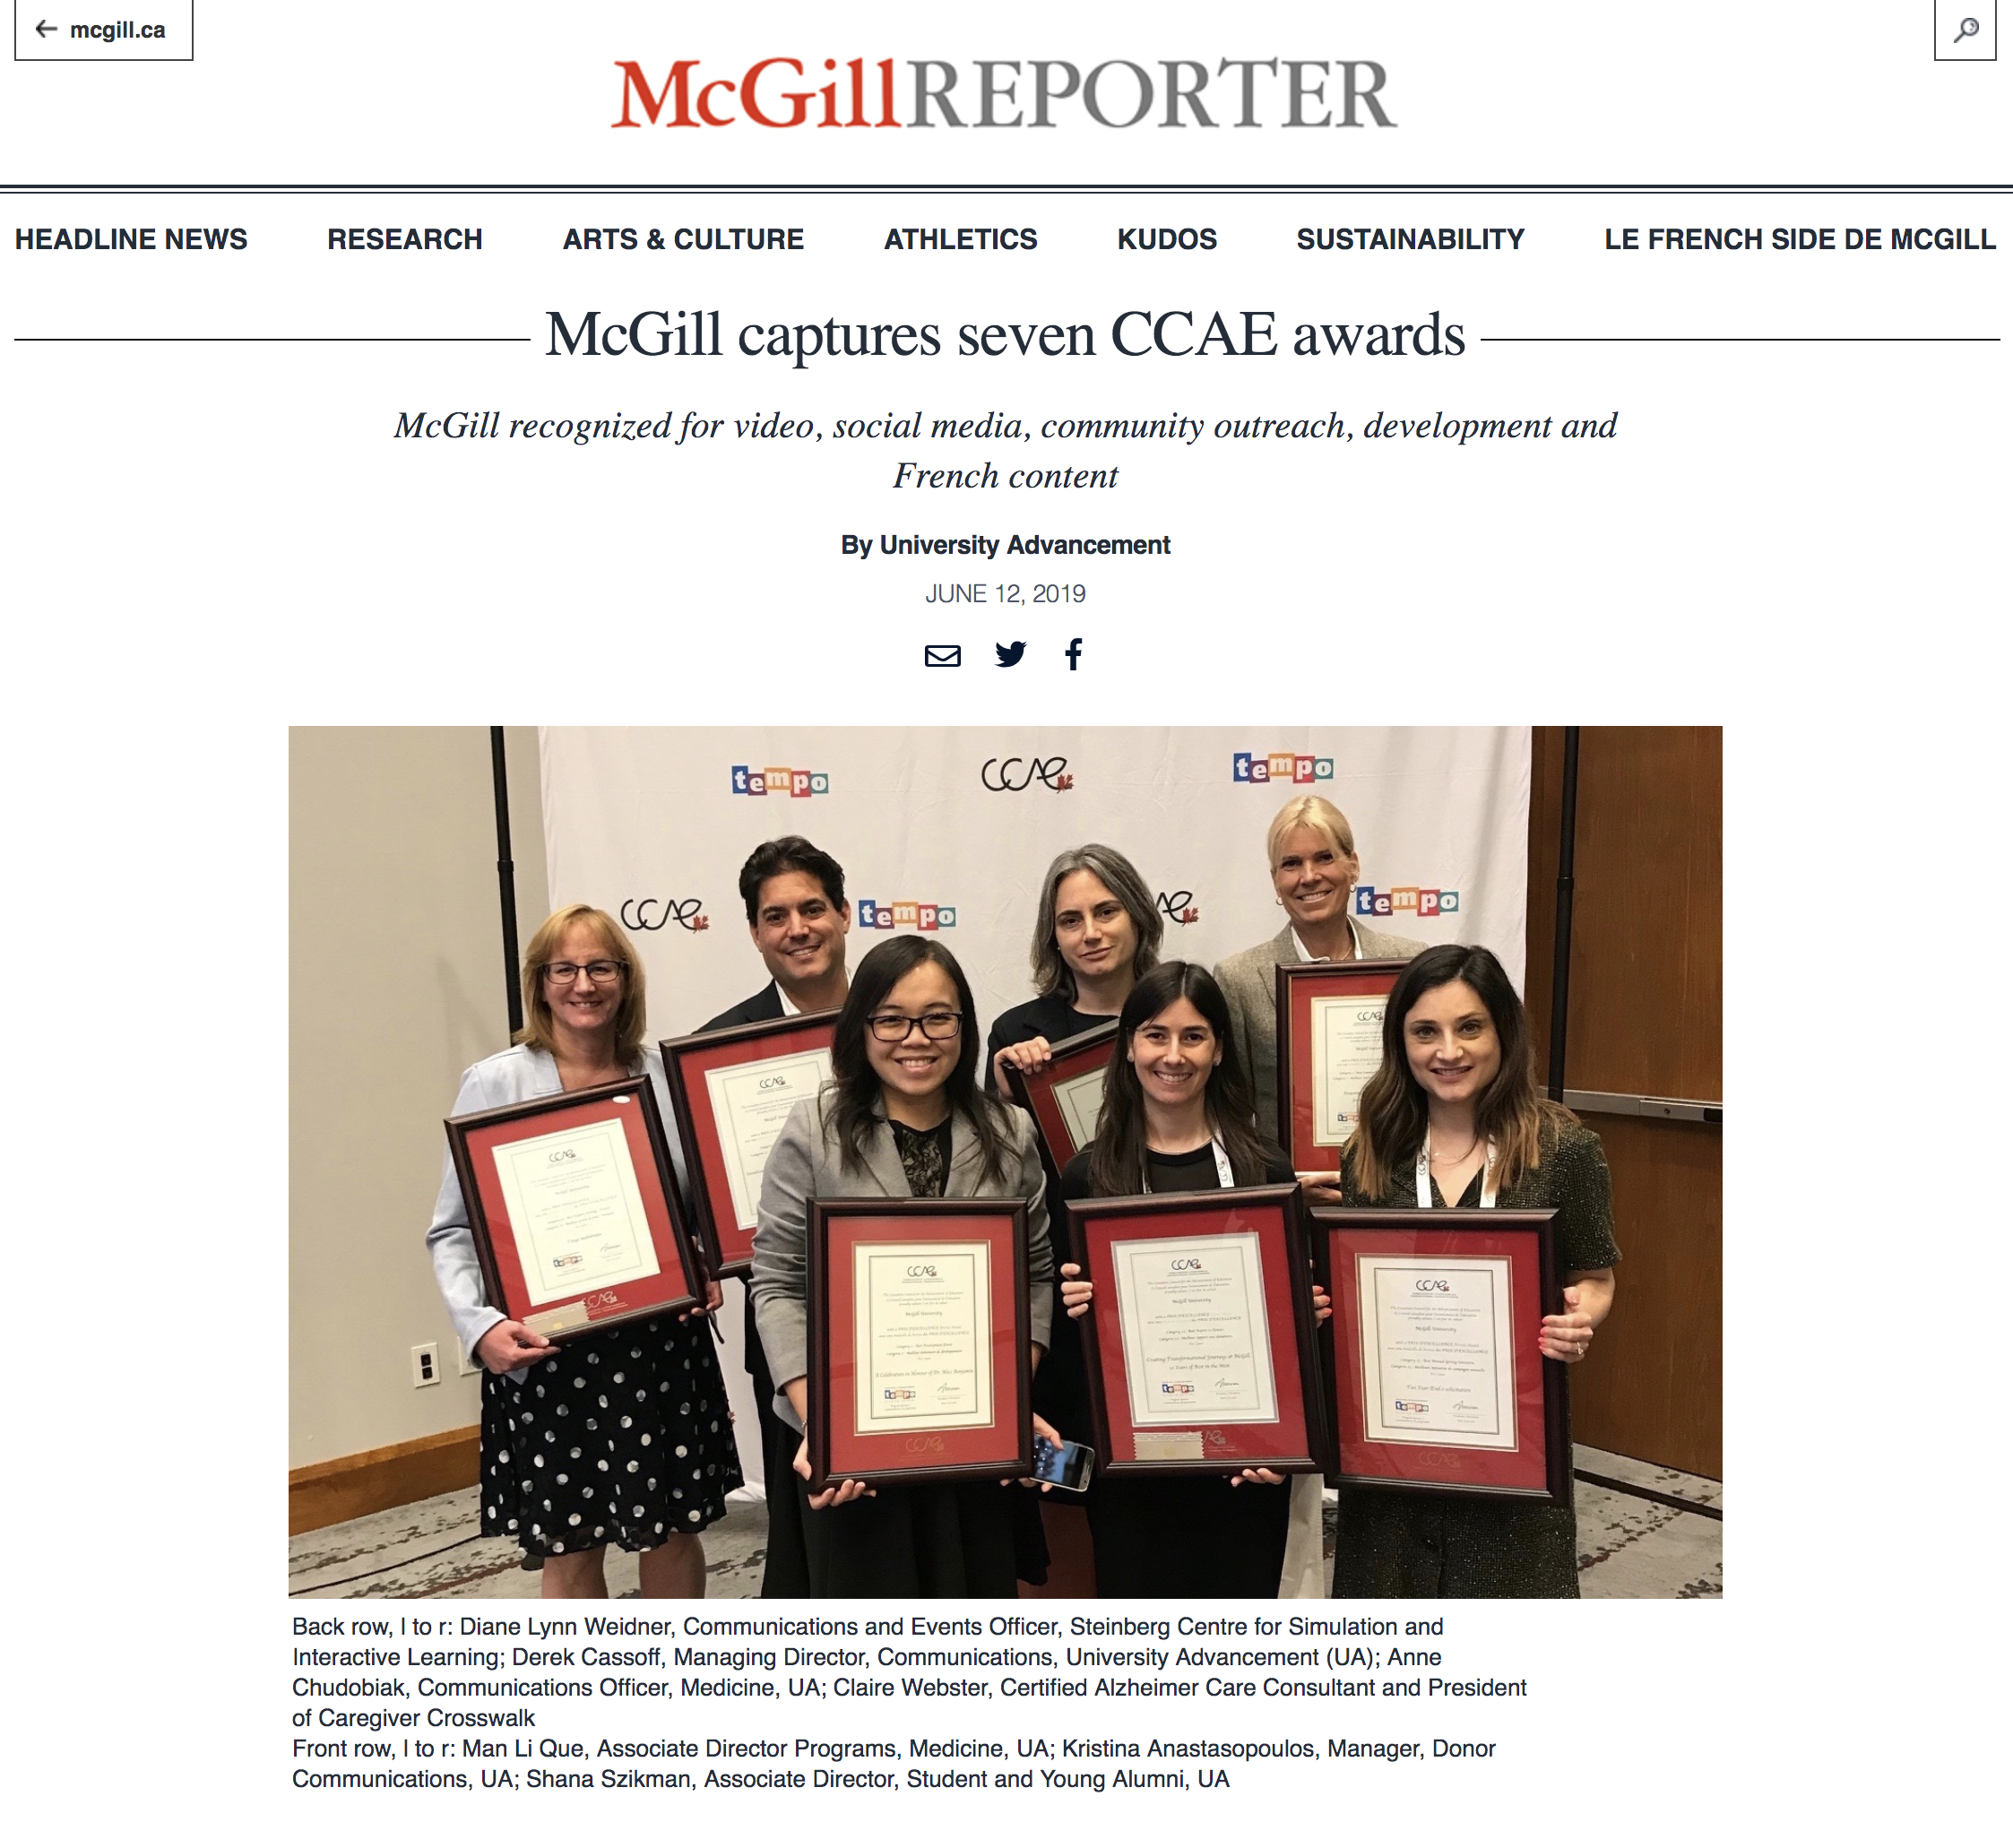 McGill Reporter - McGill Captures Seven CCAE Awards